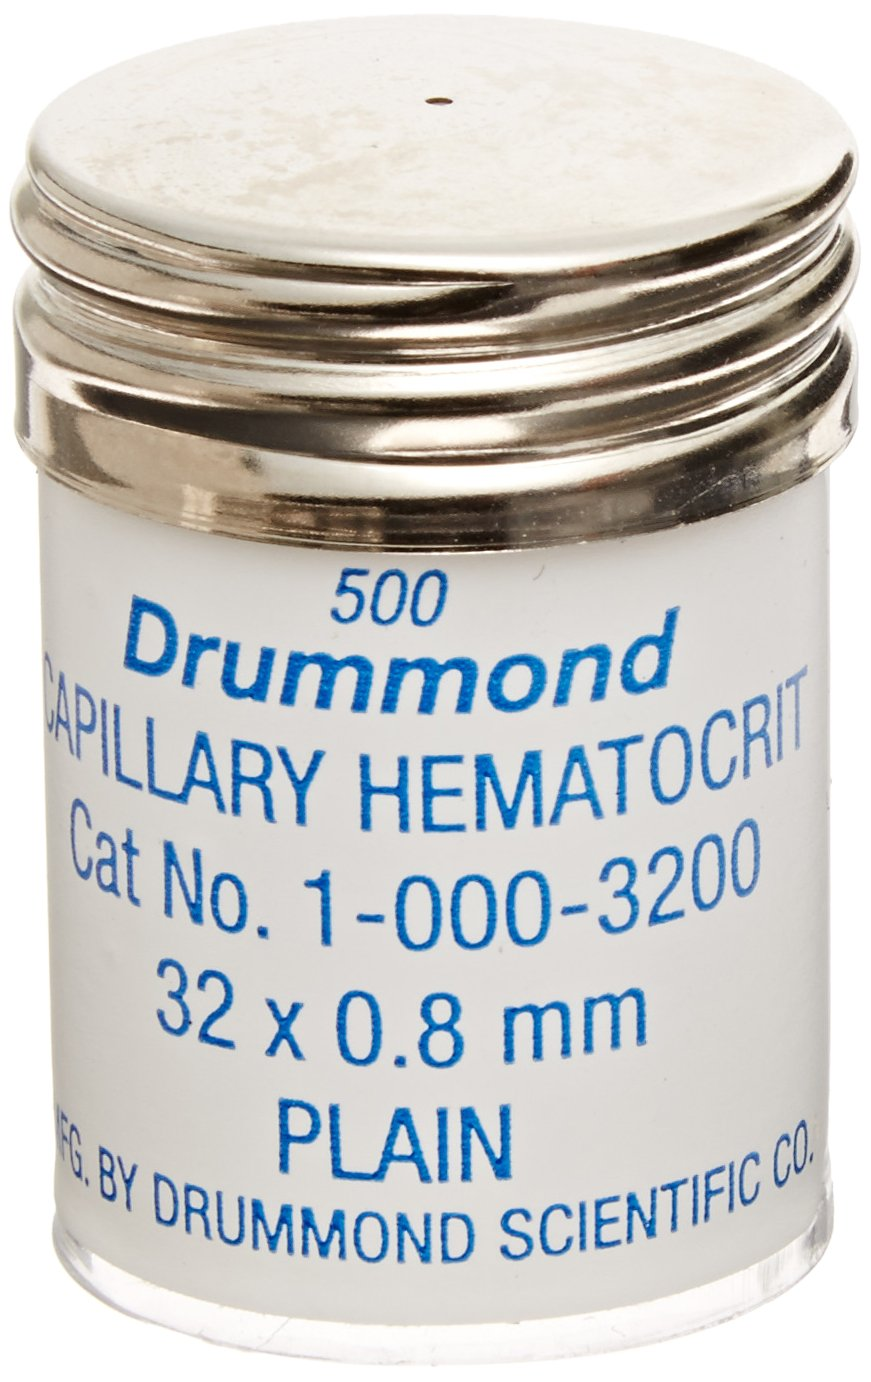 Drummond Scientific 1-000-3200 Microhematocrit Tubes, Plain, 32mm Length, 0.8mm OD, 0.1mm Wall Thickness (Pack of 500) Thomas Scientific